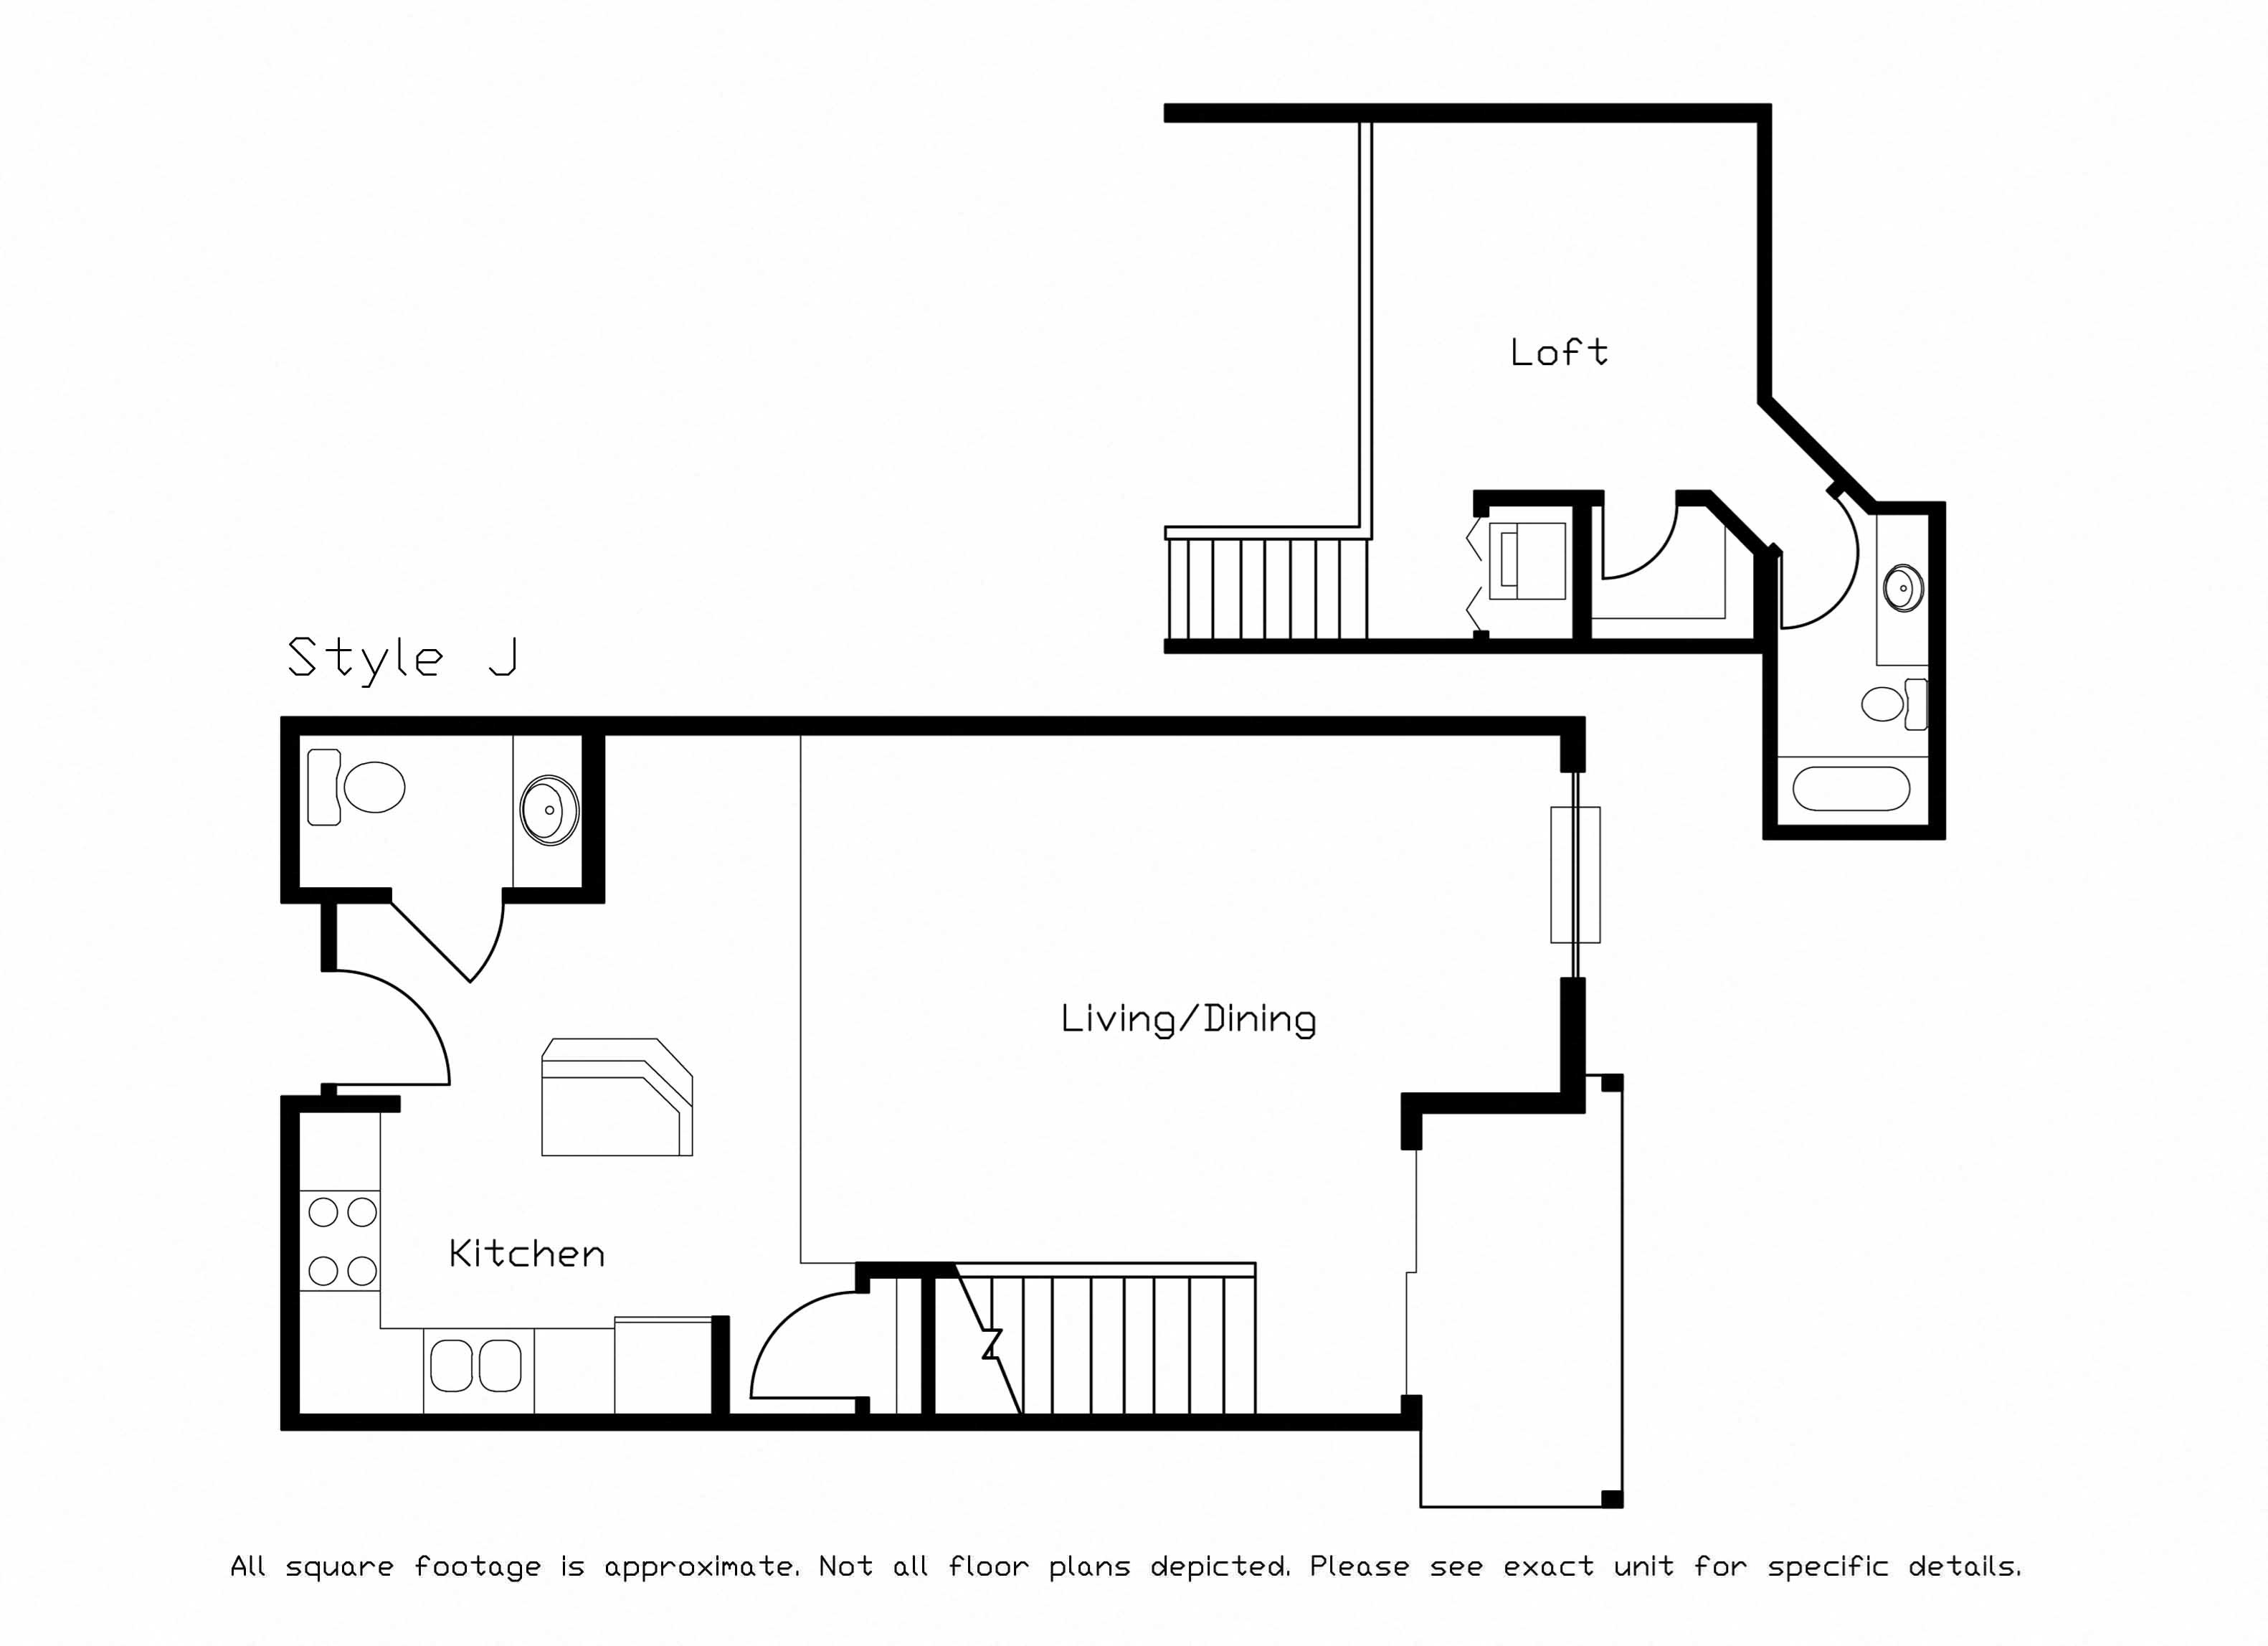 Floor Plans Of Prairie Ridge In Madison Wi Actually Prefer To Get Several Copies My Plan And Draw Each J 7